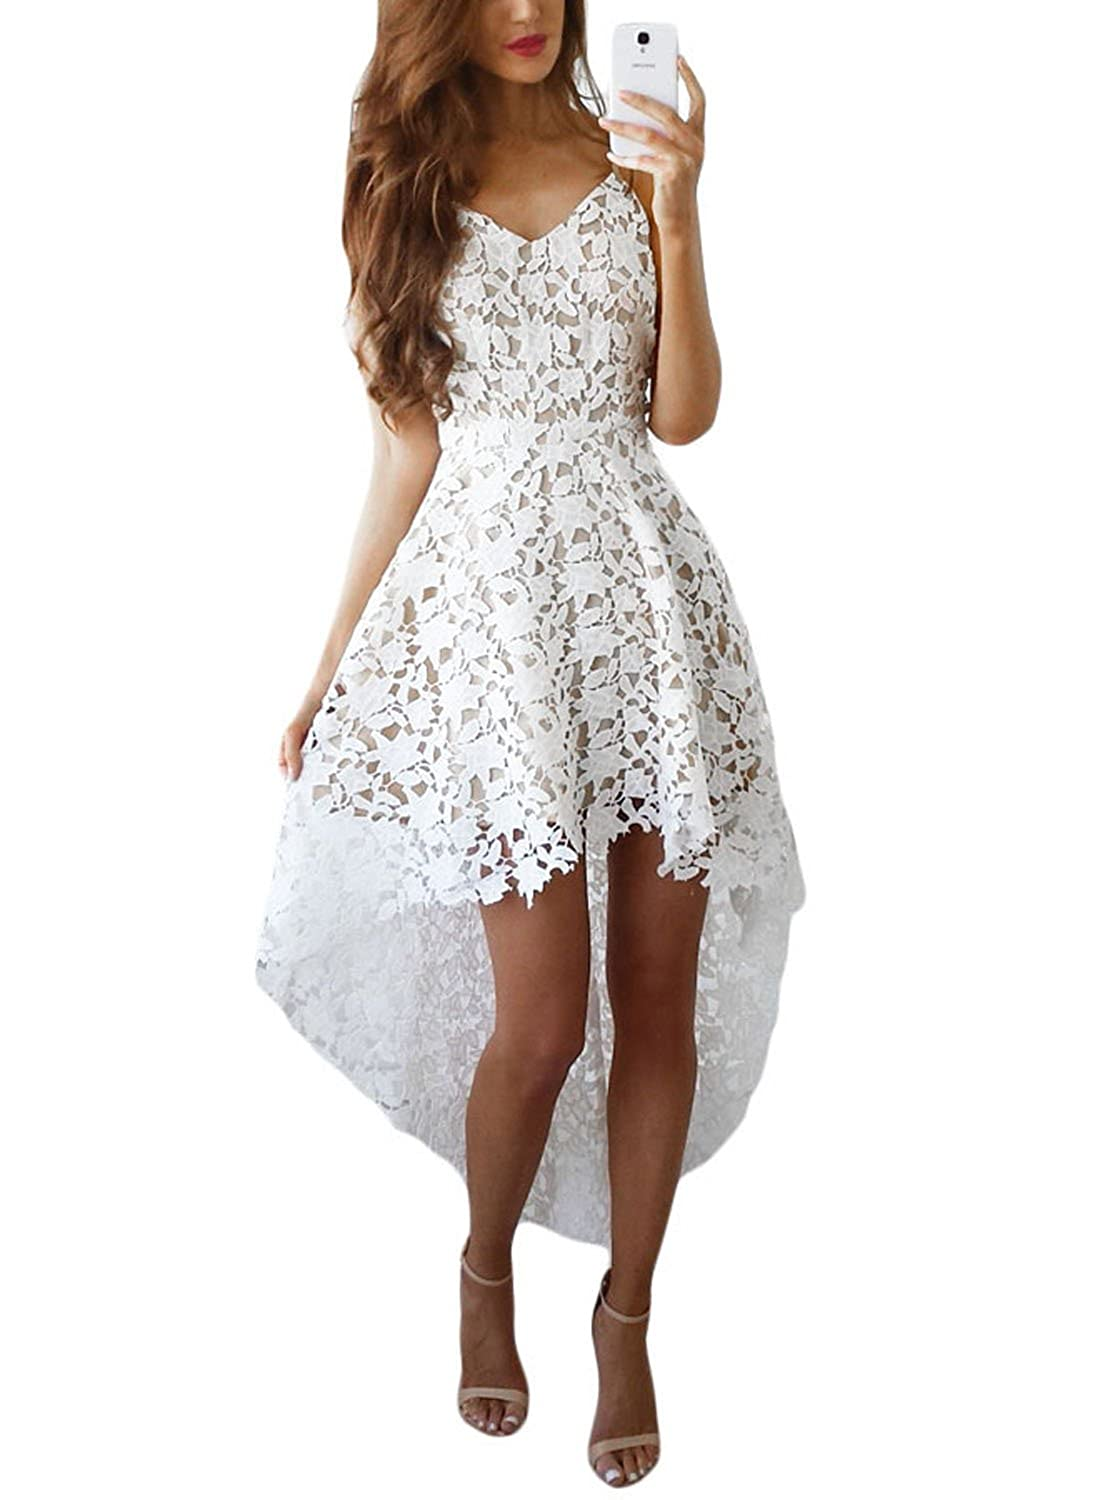 a6a3f2579f AlvaQ Women s V Neck Sleeveless Lace Hollow High Low Party Dress at Amazon  Women s Clothing store